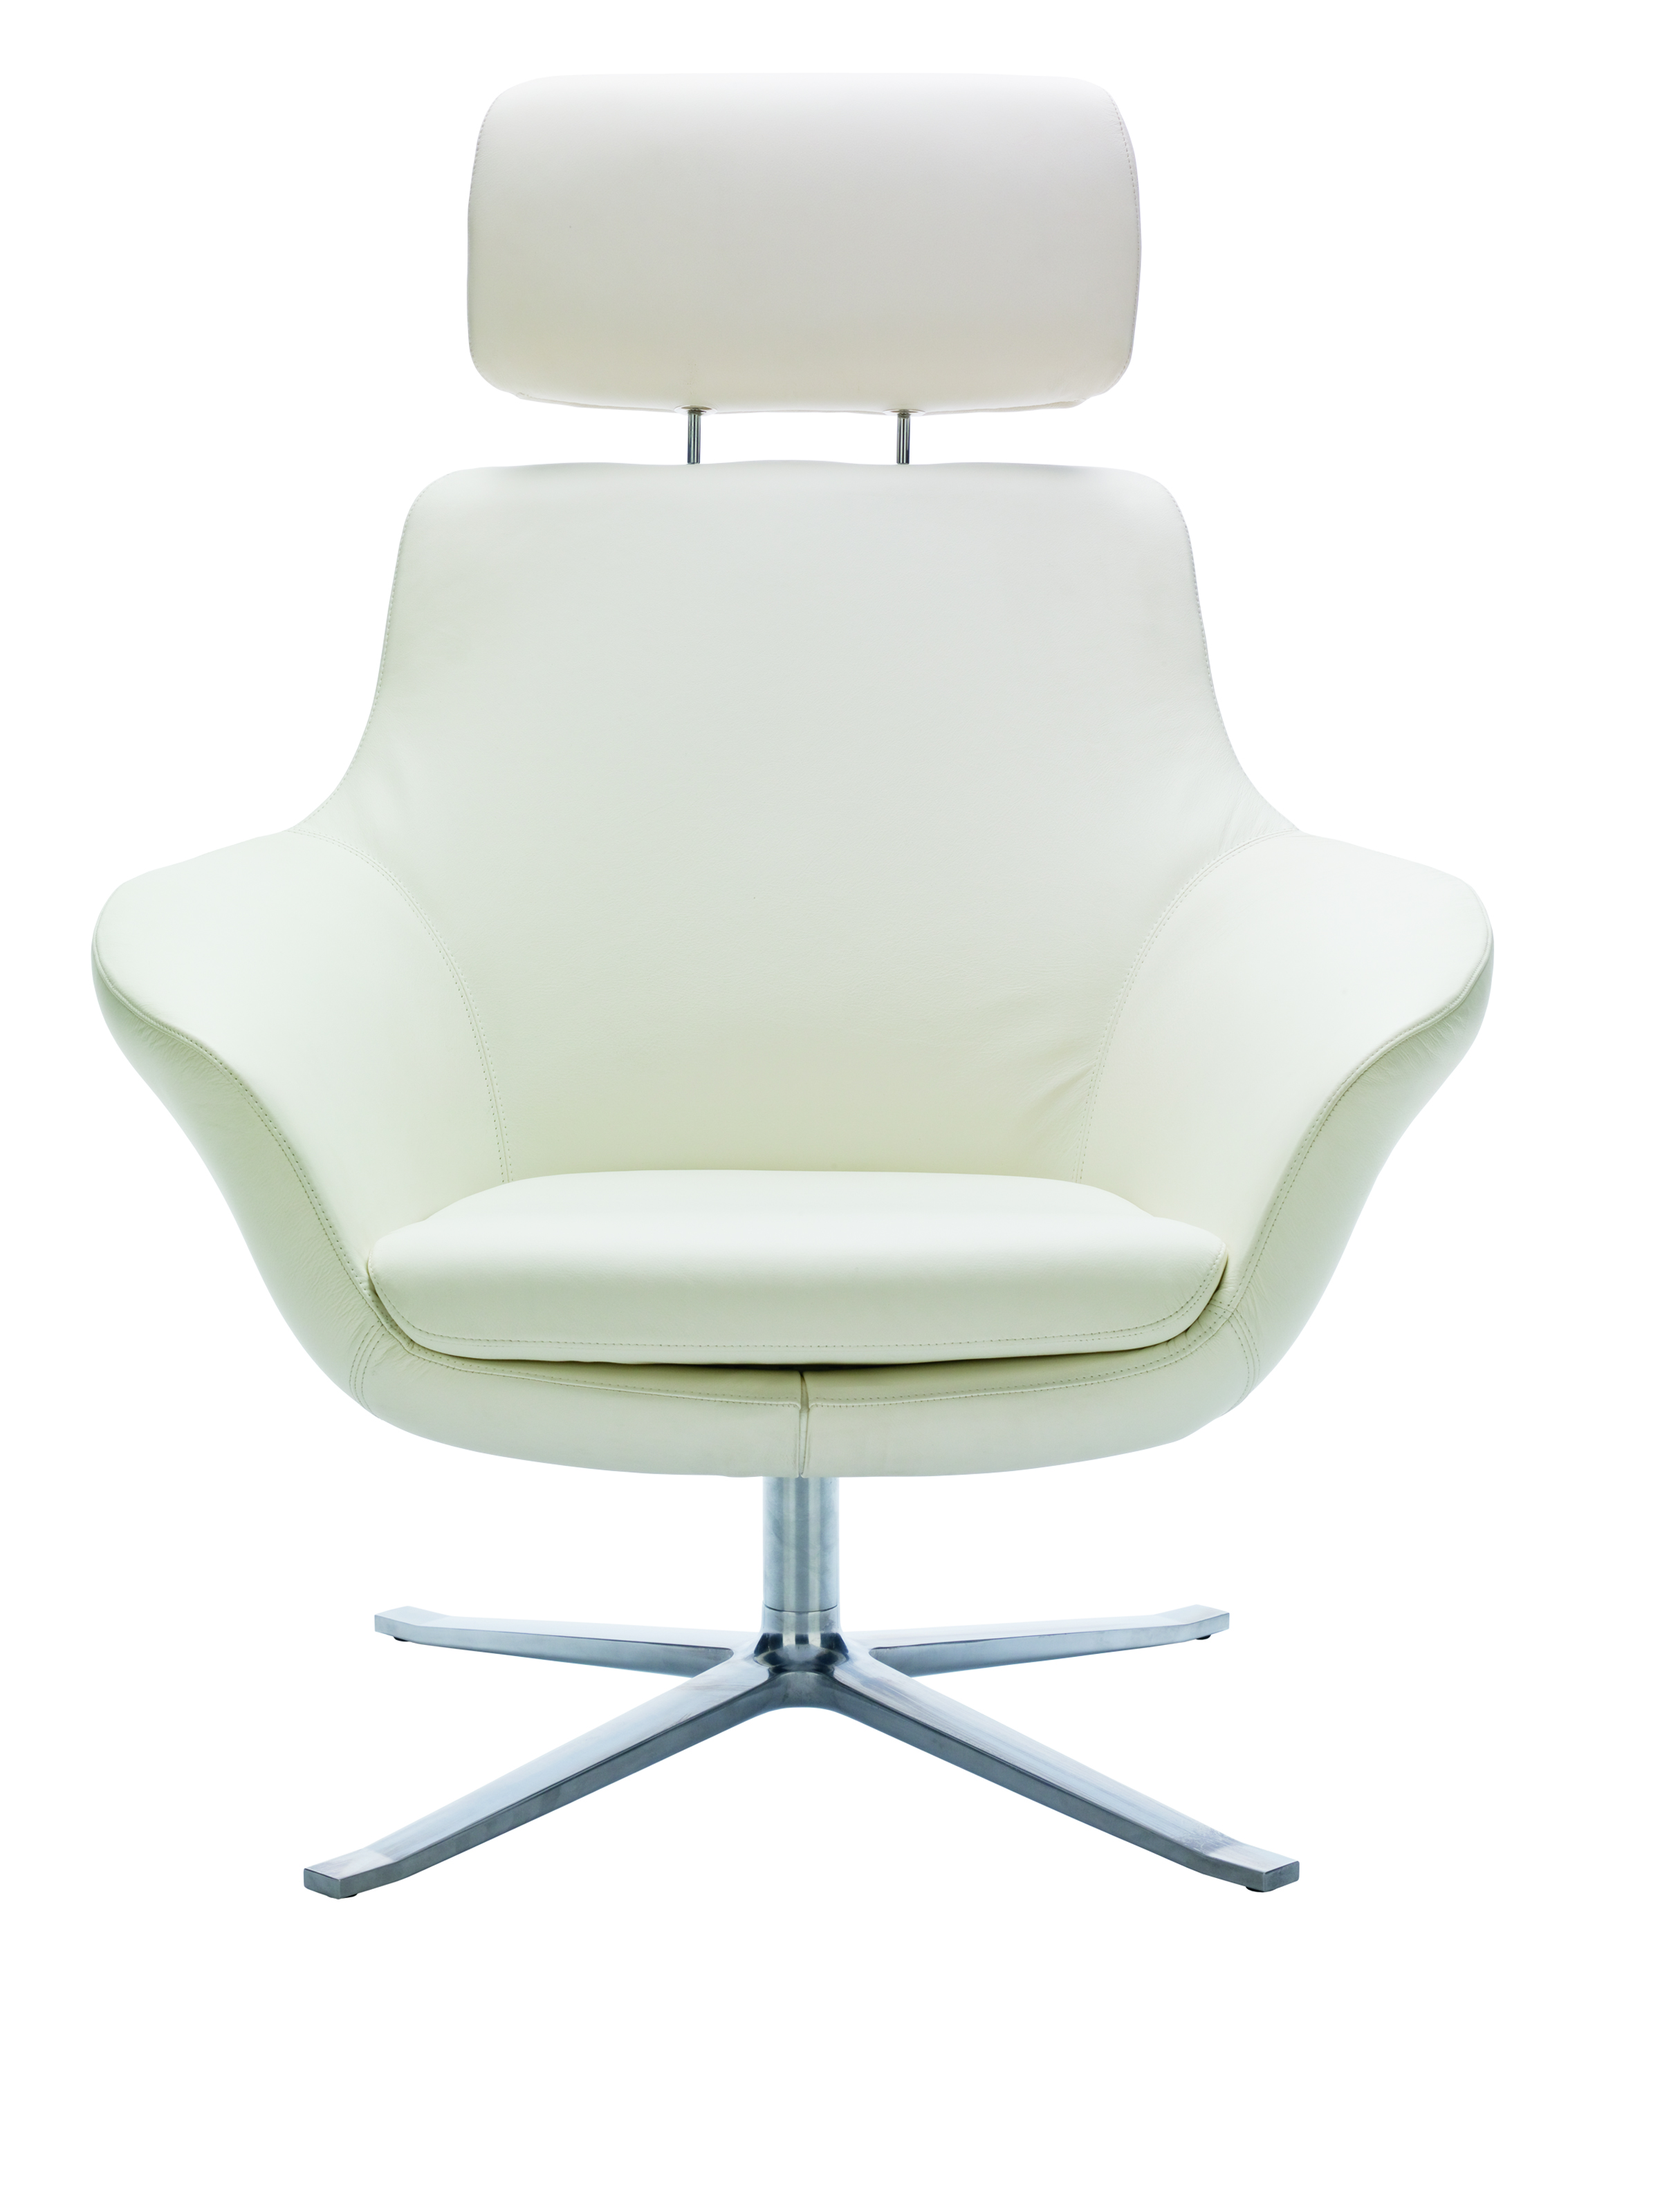 Bob Lounge Chair on Designer Pages